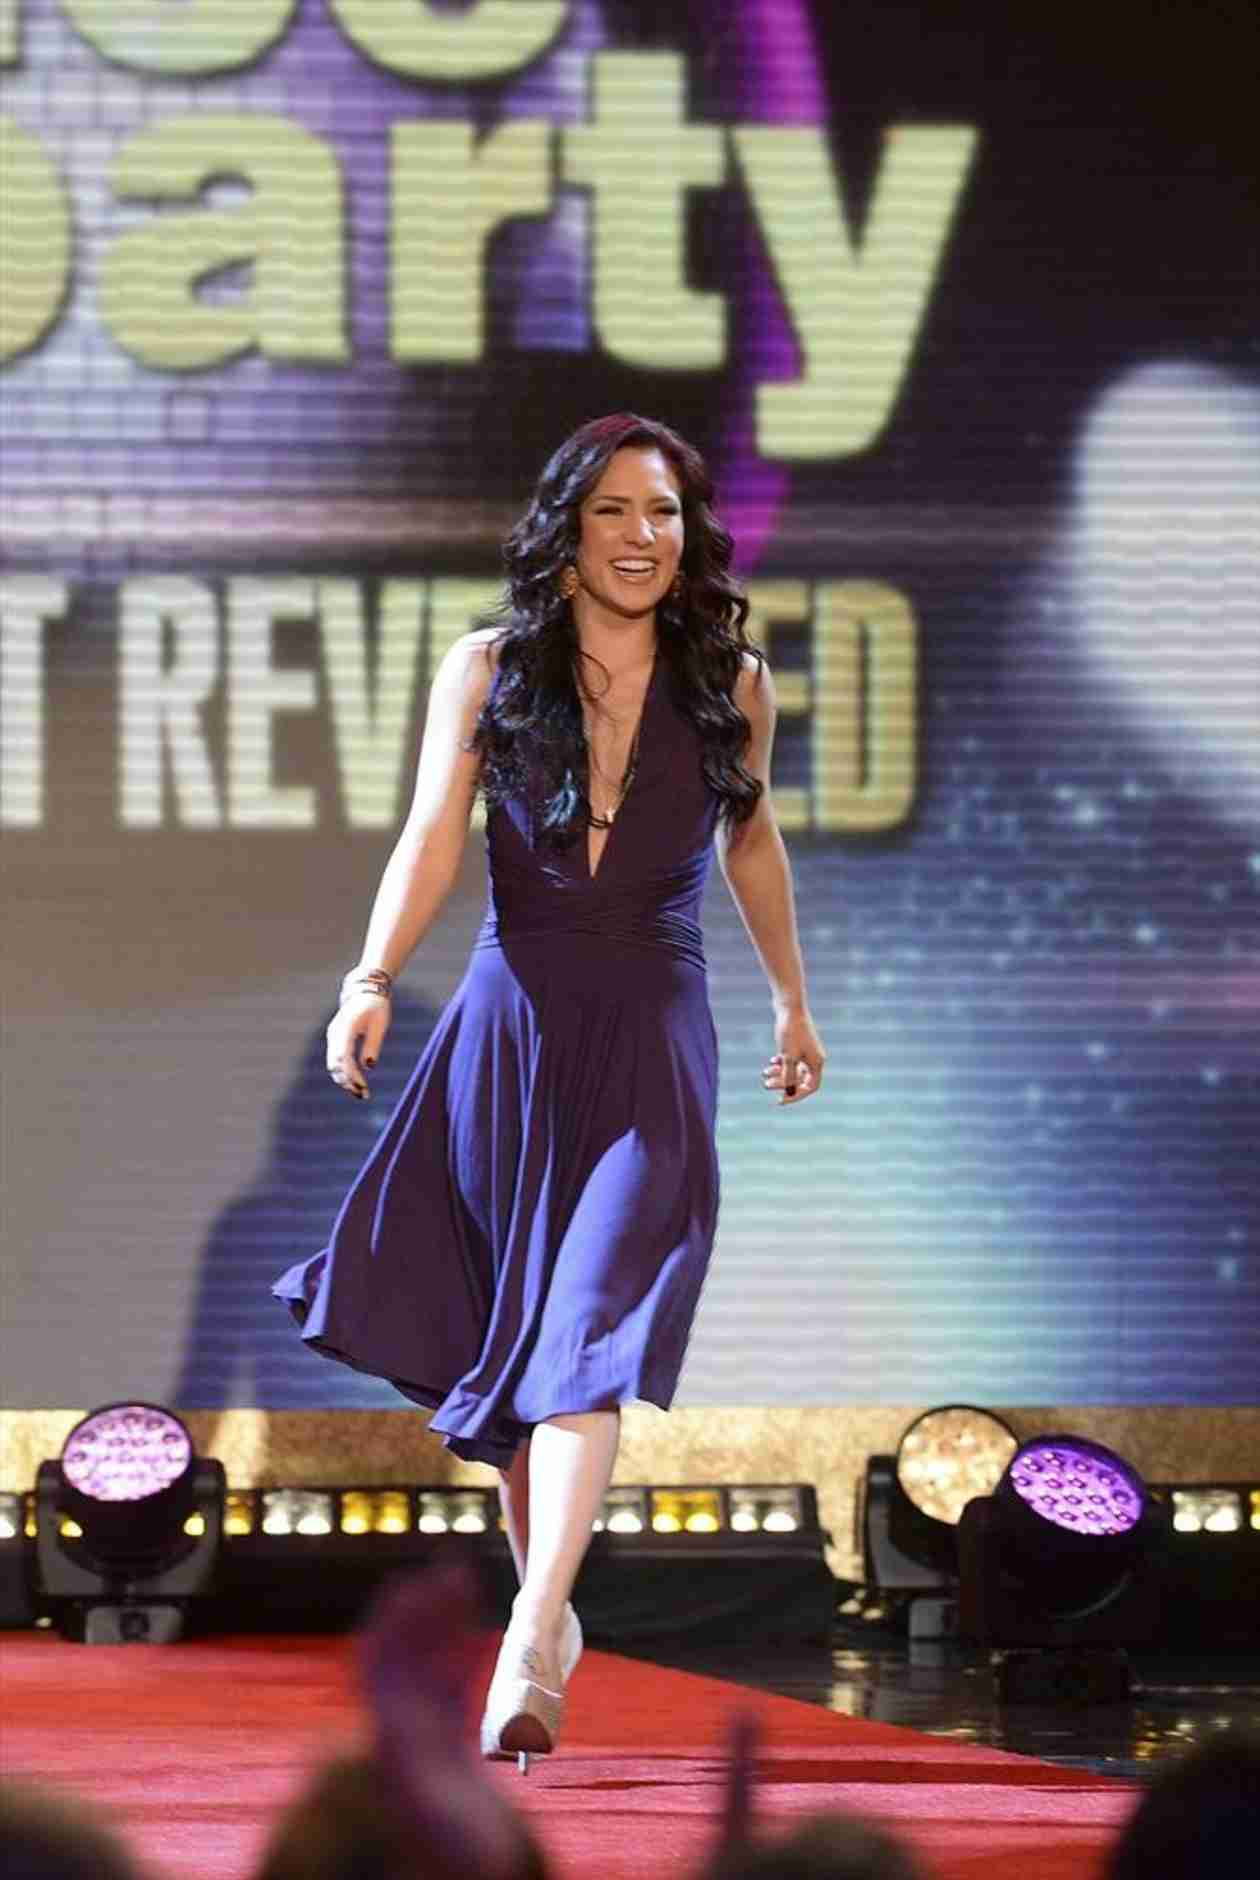 Dancing With the Stars Season 19: 13 Stars, Sharna Burgess Is Back In!